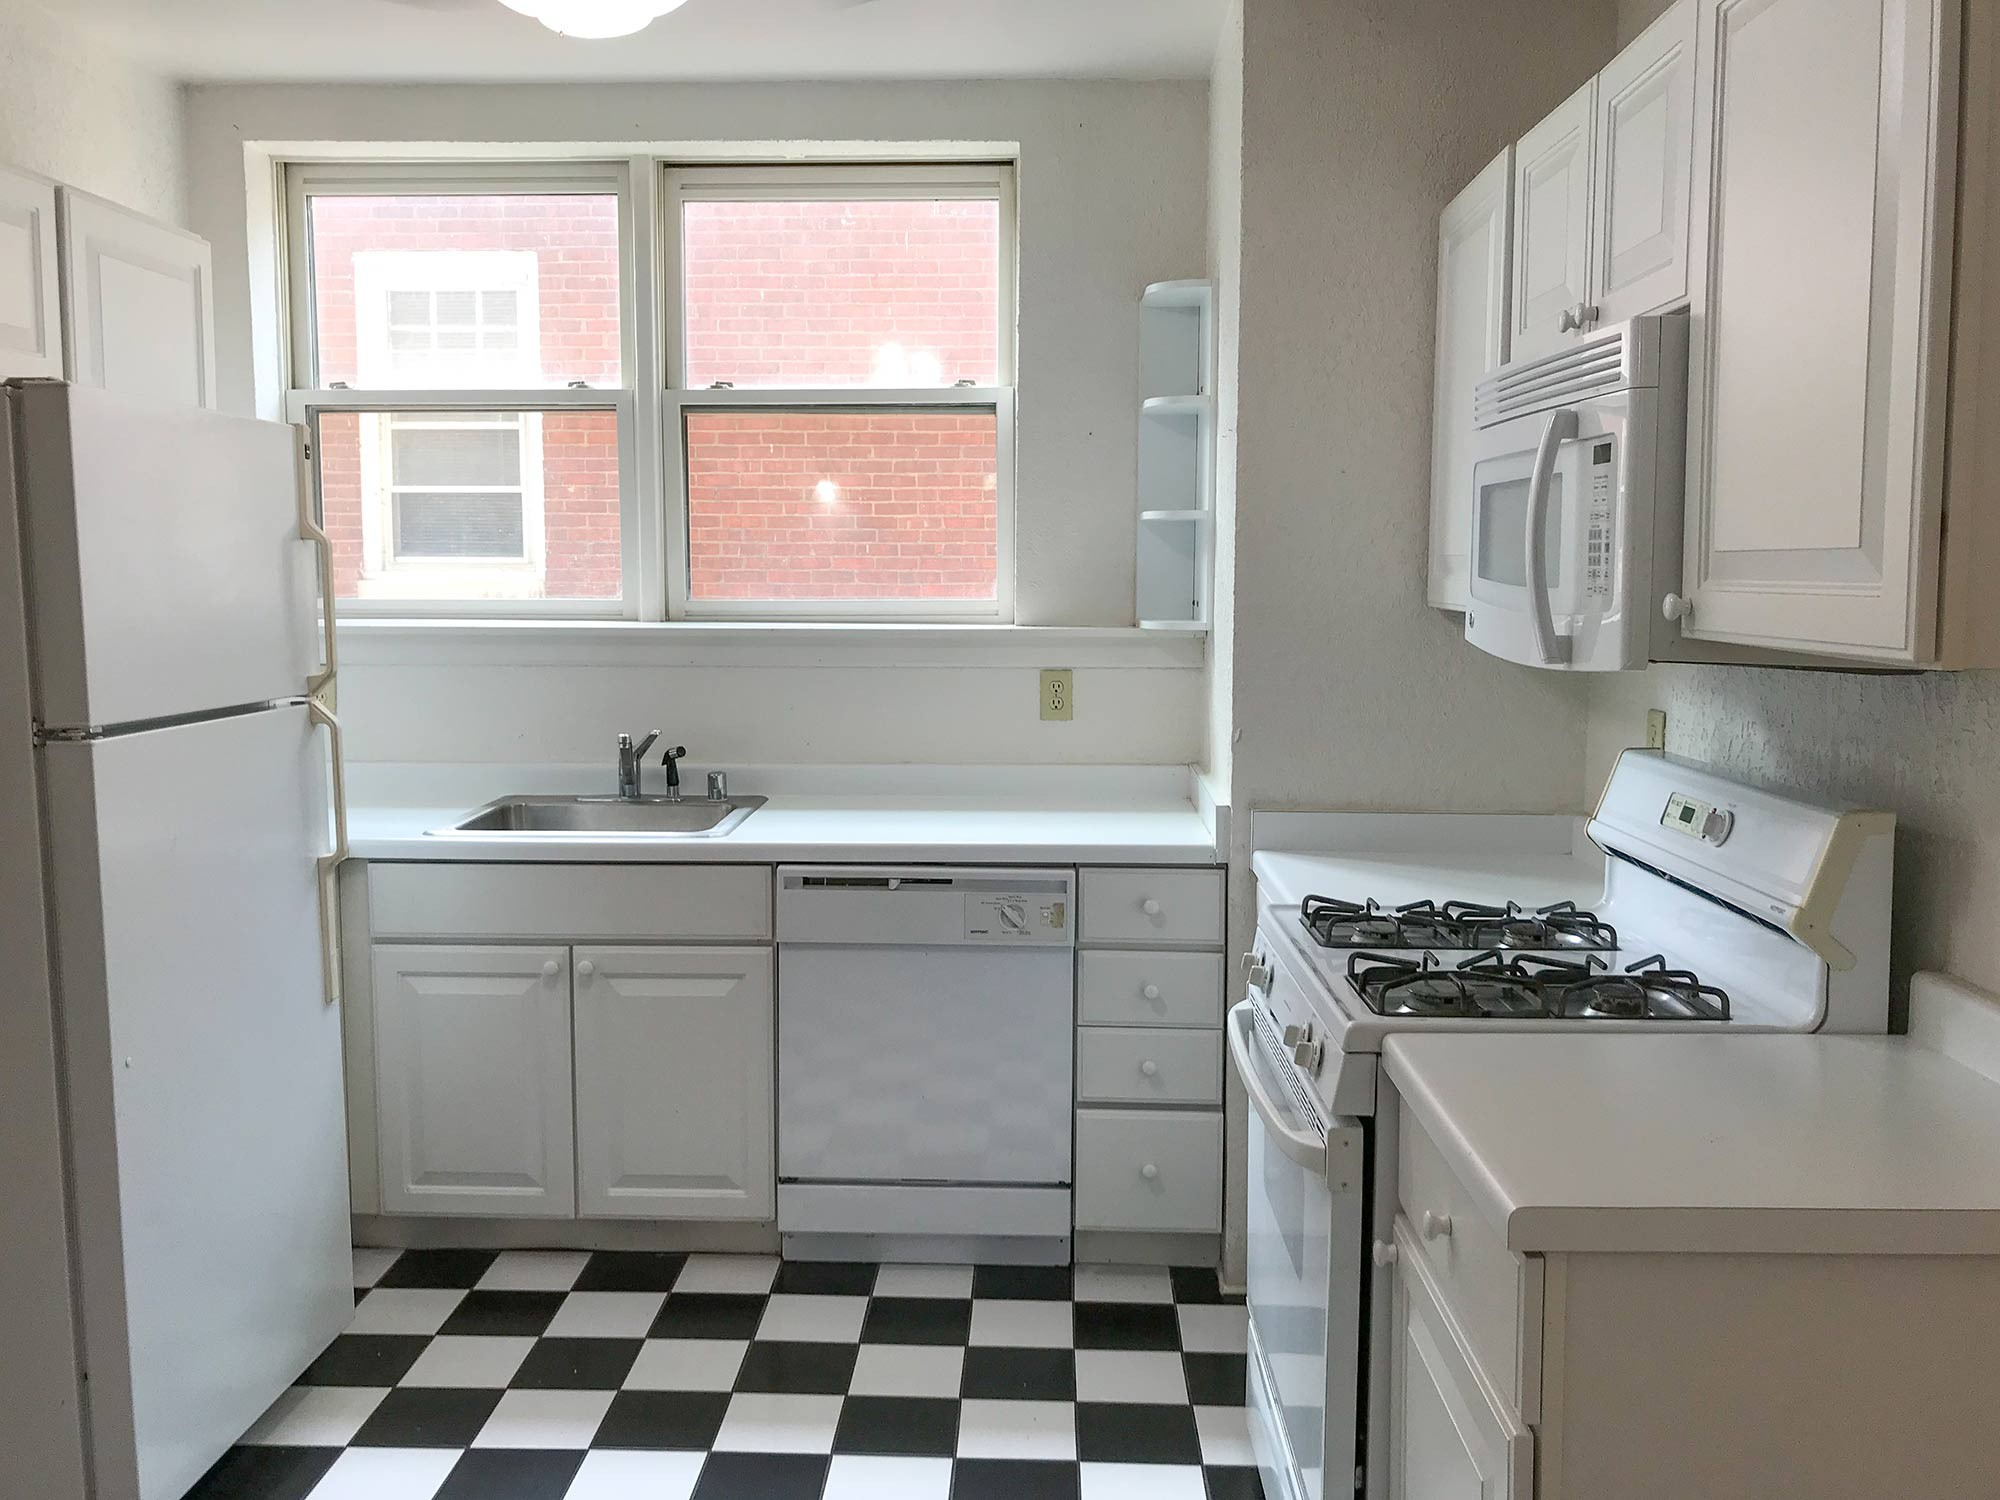 Apartments Near Milwaukee 2550 N. Lake $500 Off First Month Rent for University of Wisconsin-Milwaukee Students in Milwaukee, WI